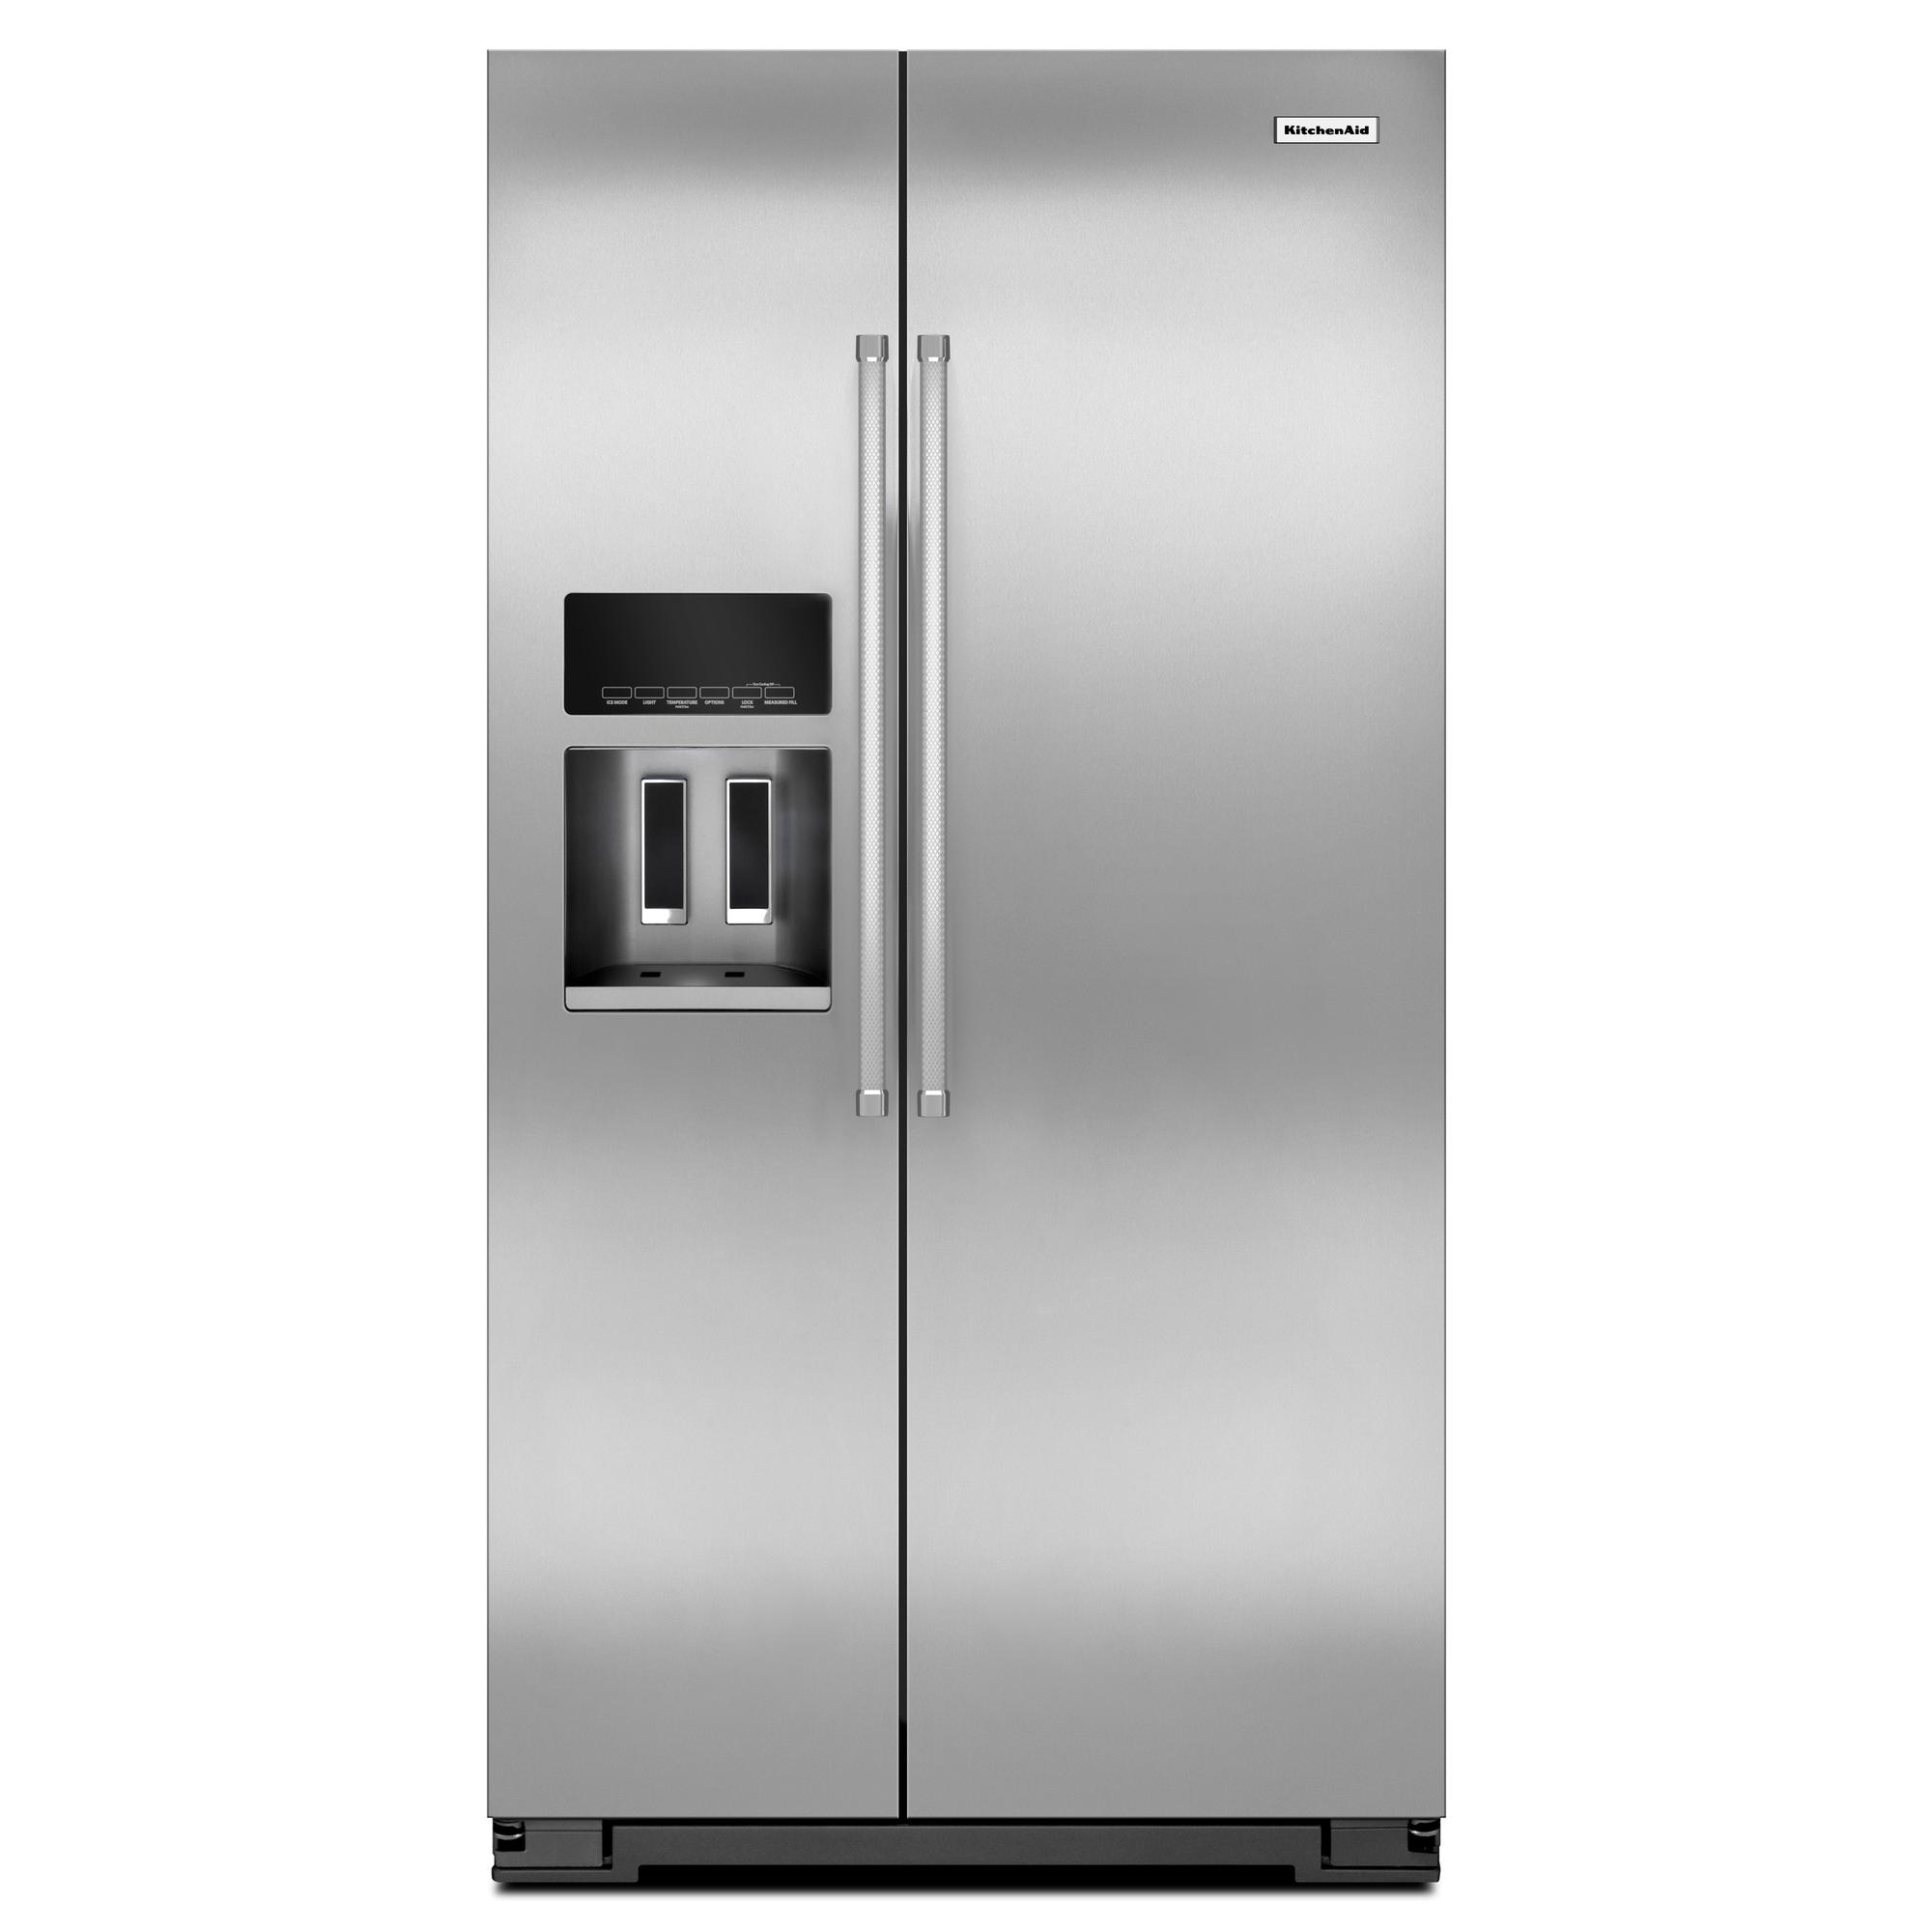 19-8-cu-ft-Counter-Depth-Side-by-Side-Refrigerator-Stainless-Steel